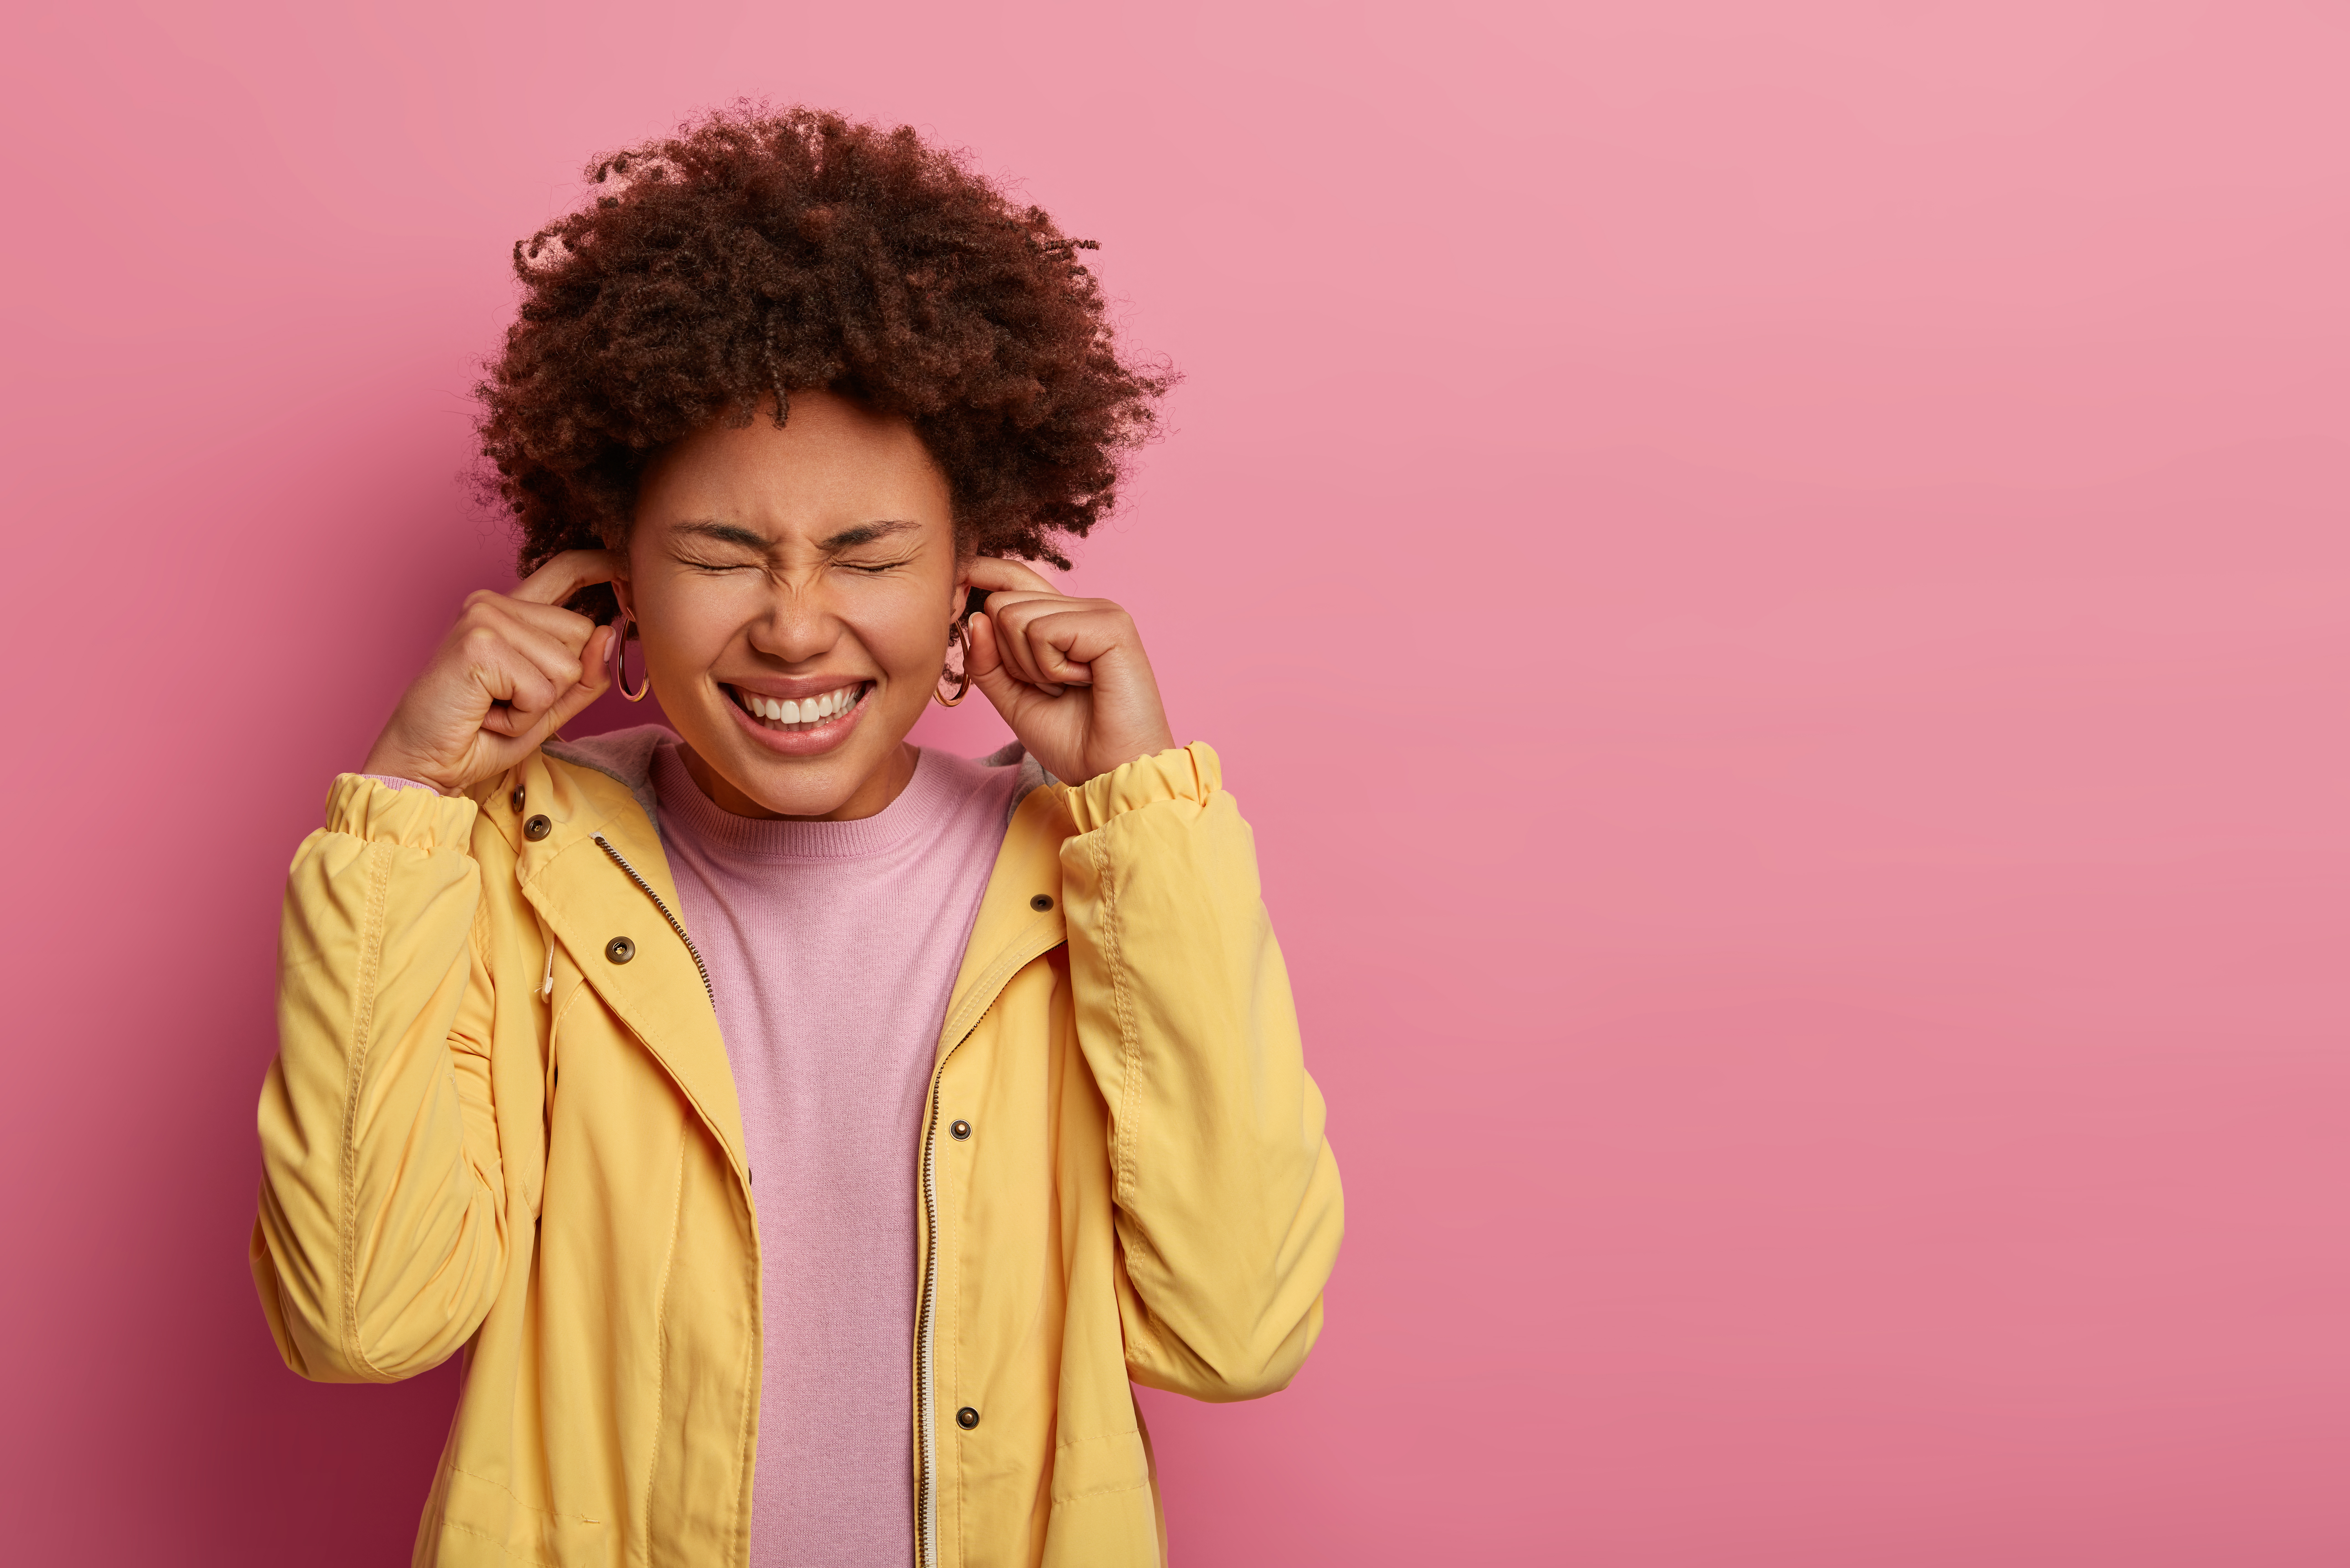 Studio shot of displeased dark skinned woman plugs ears, squints face and ignores unpleasant sound, clenches teeth, wears yellow anorak, stands over rosy wall, free space for your promotional content